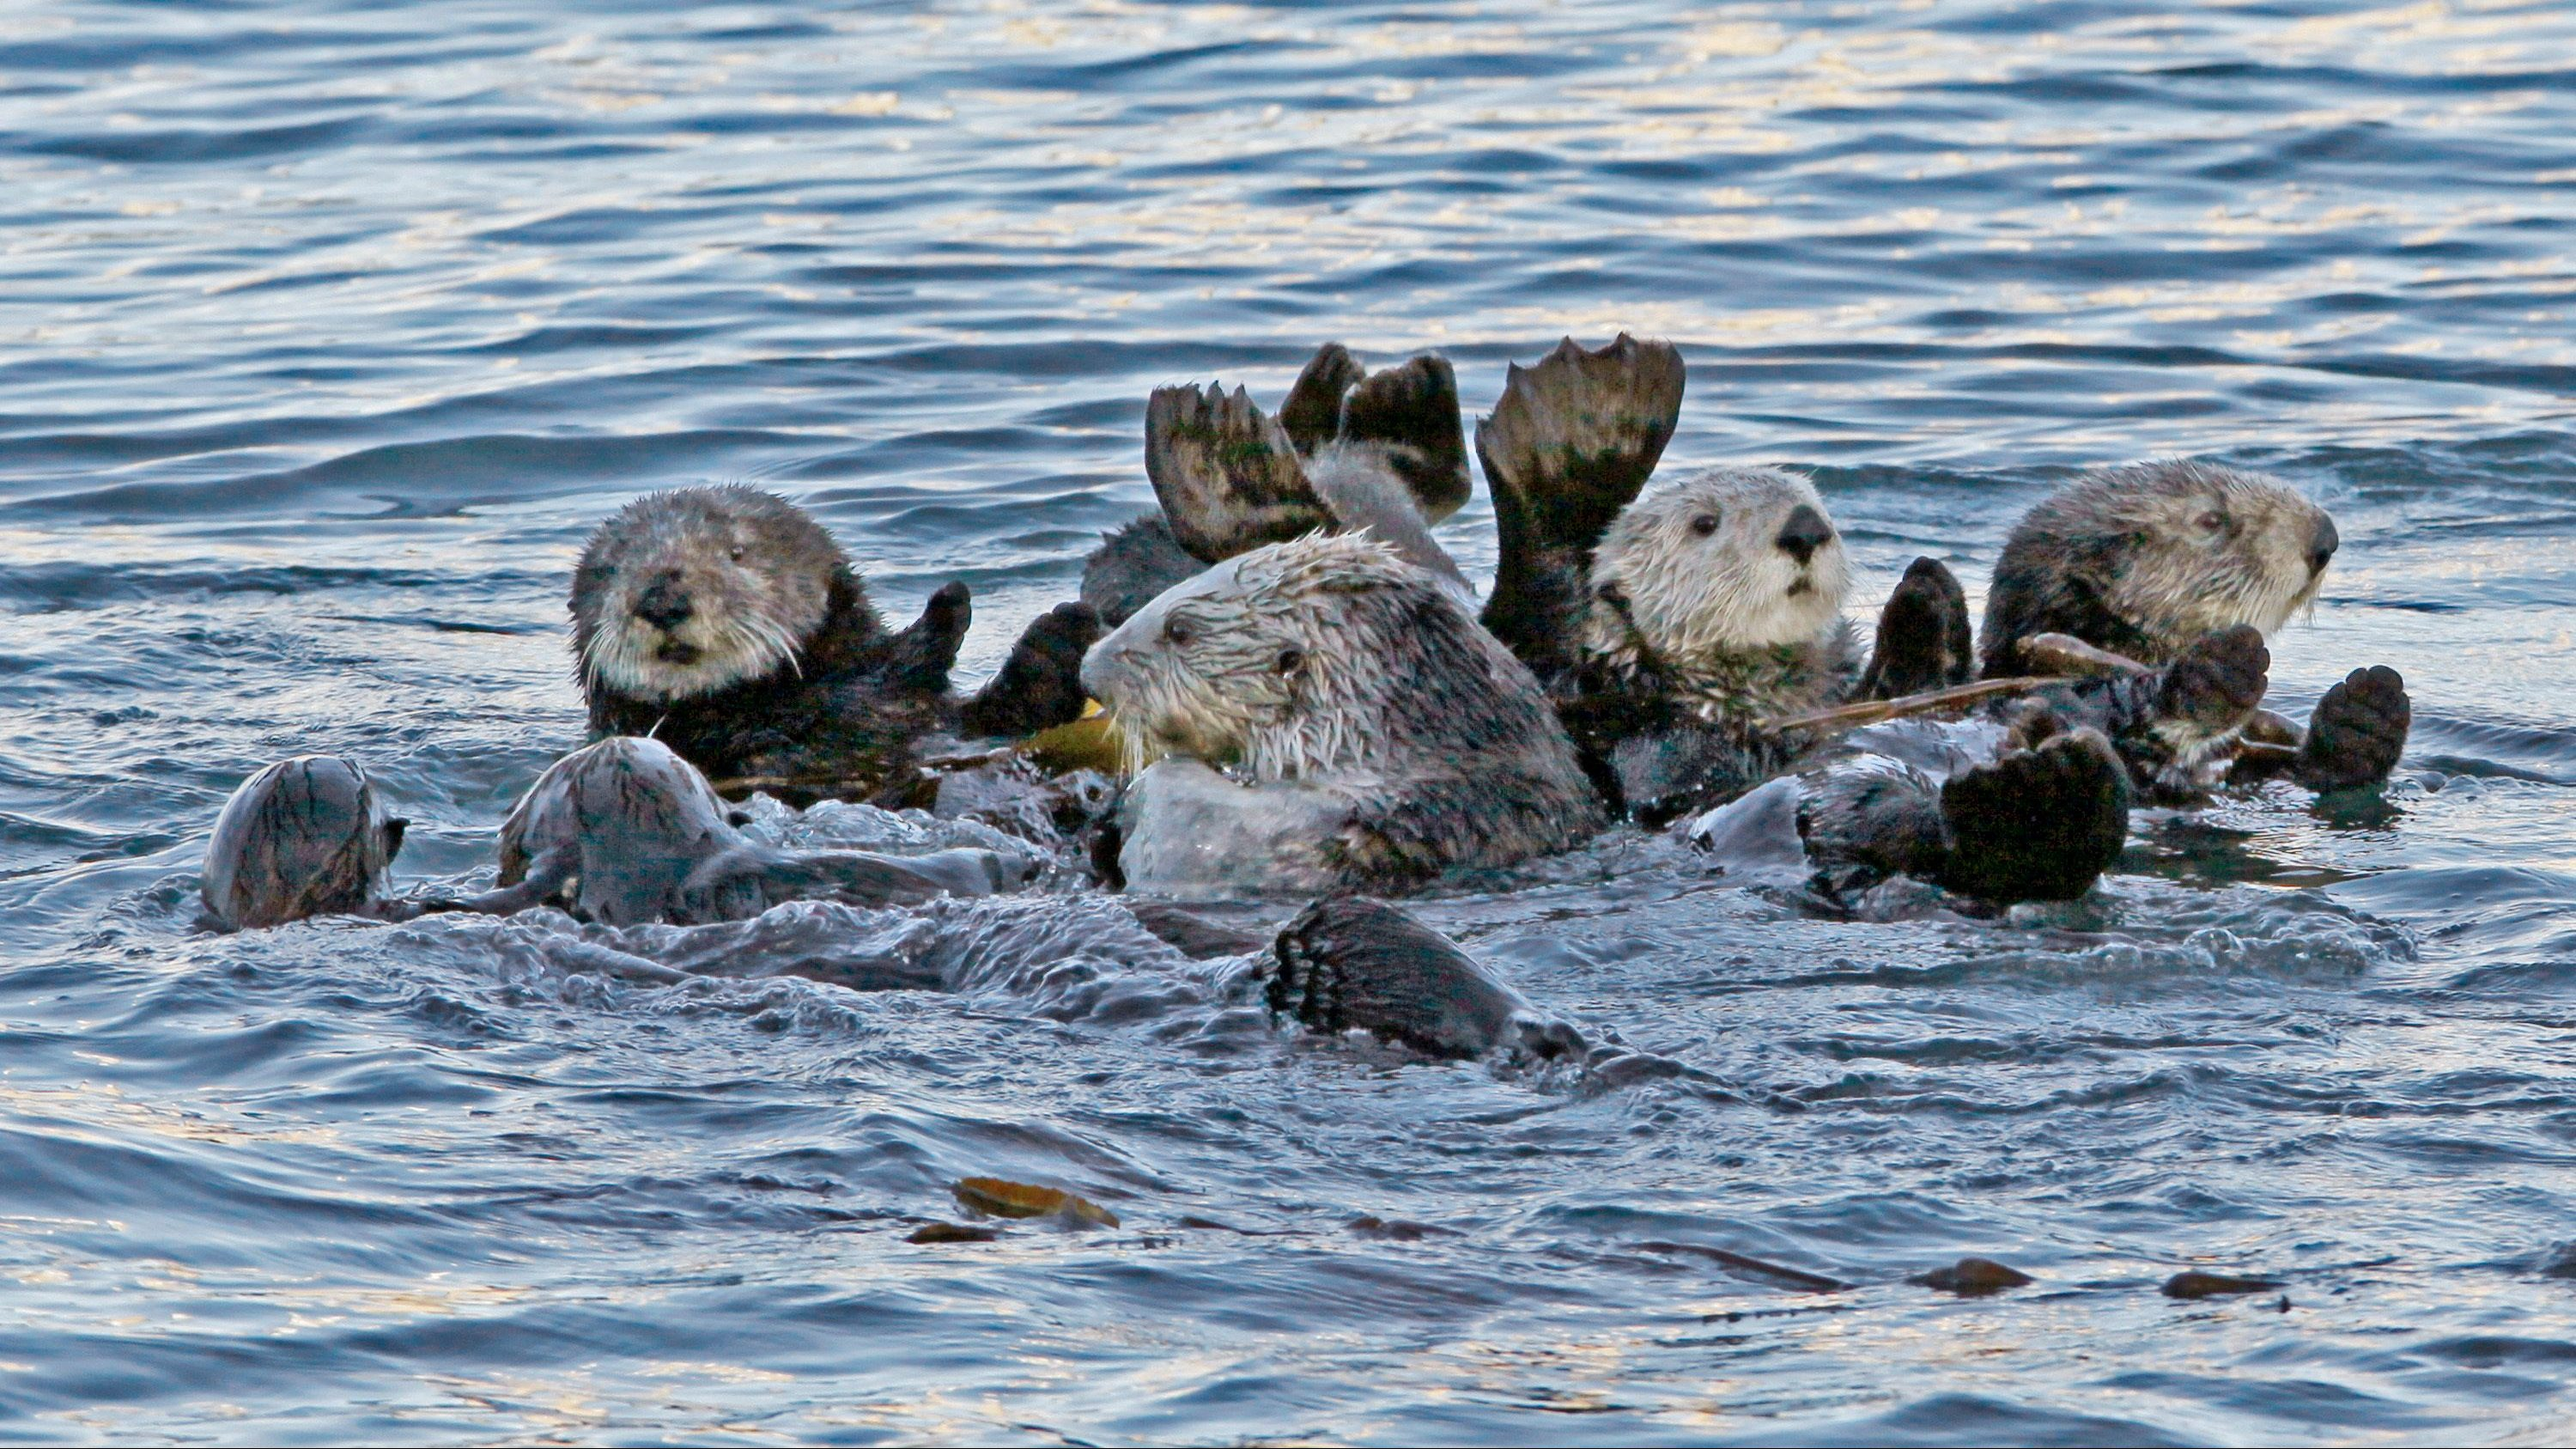 a raft of sea otters floating in the ocean.